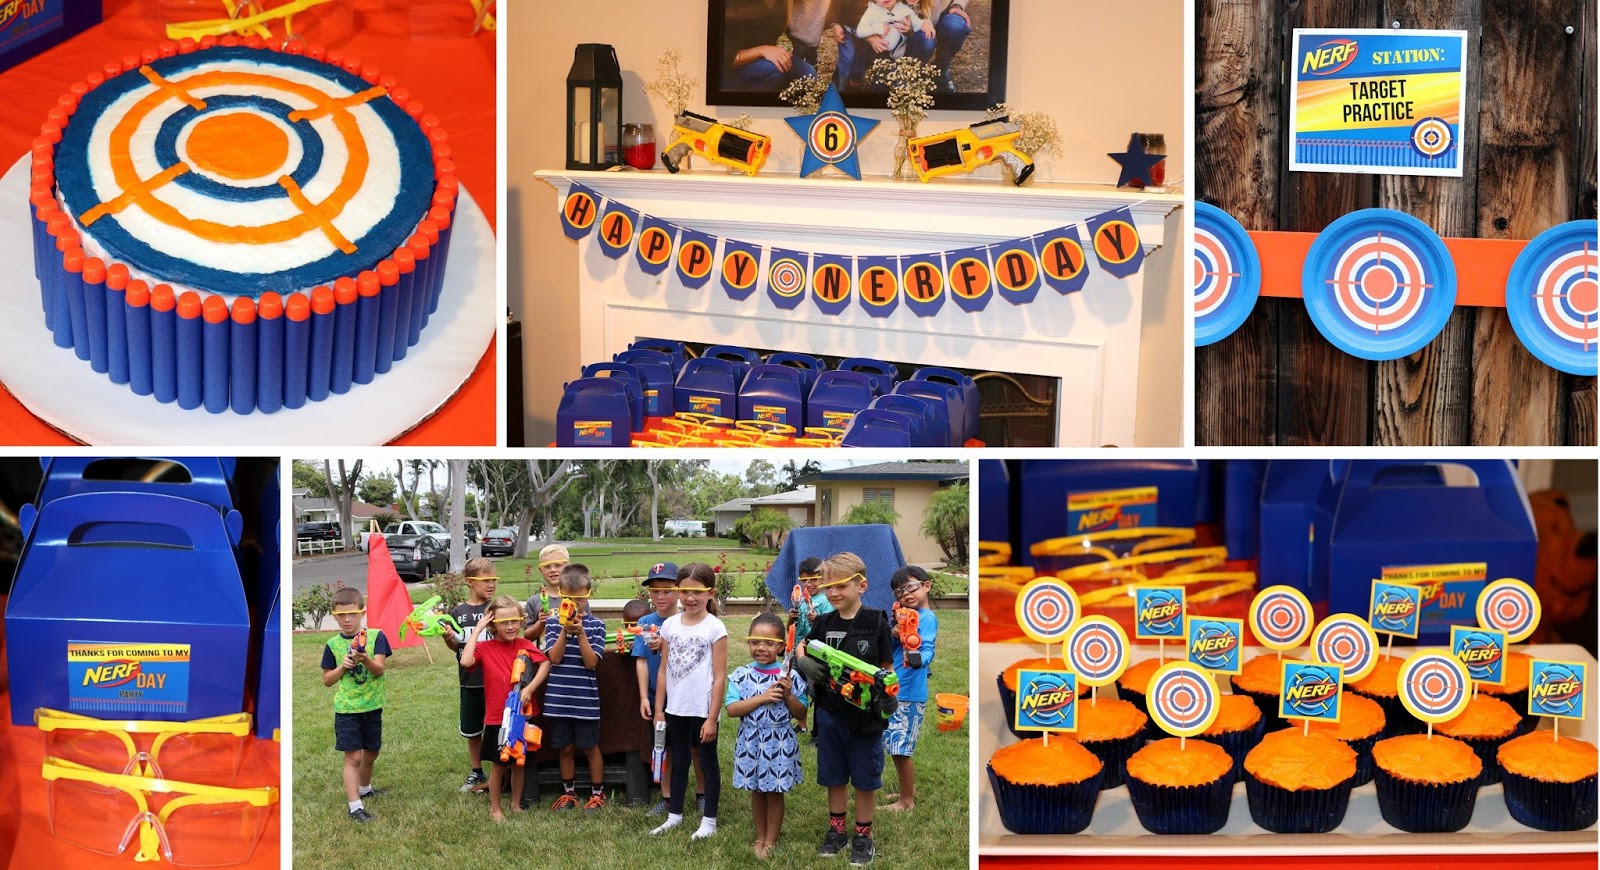 Nerf Birthday Party Decorations  Invite and Delight Nerf Gun Party